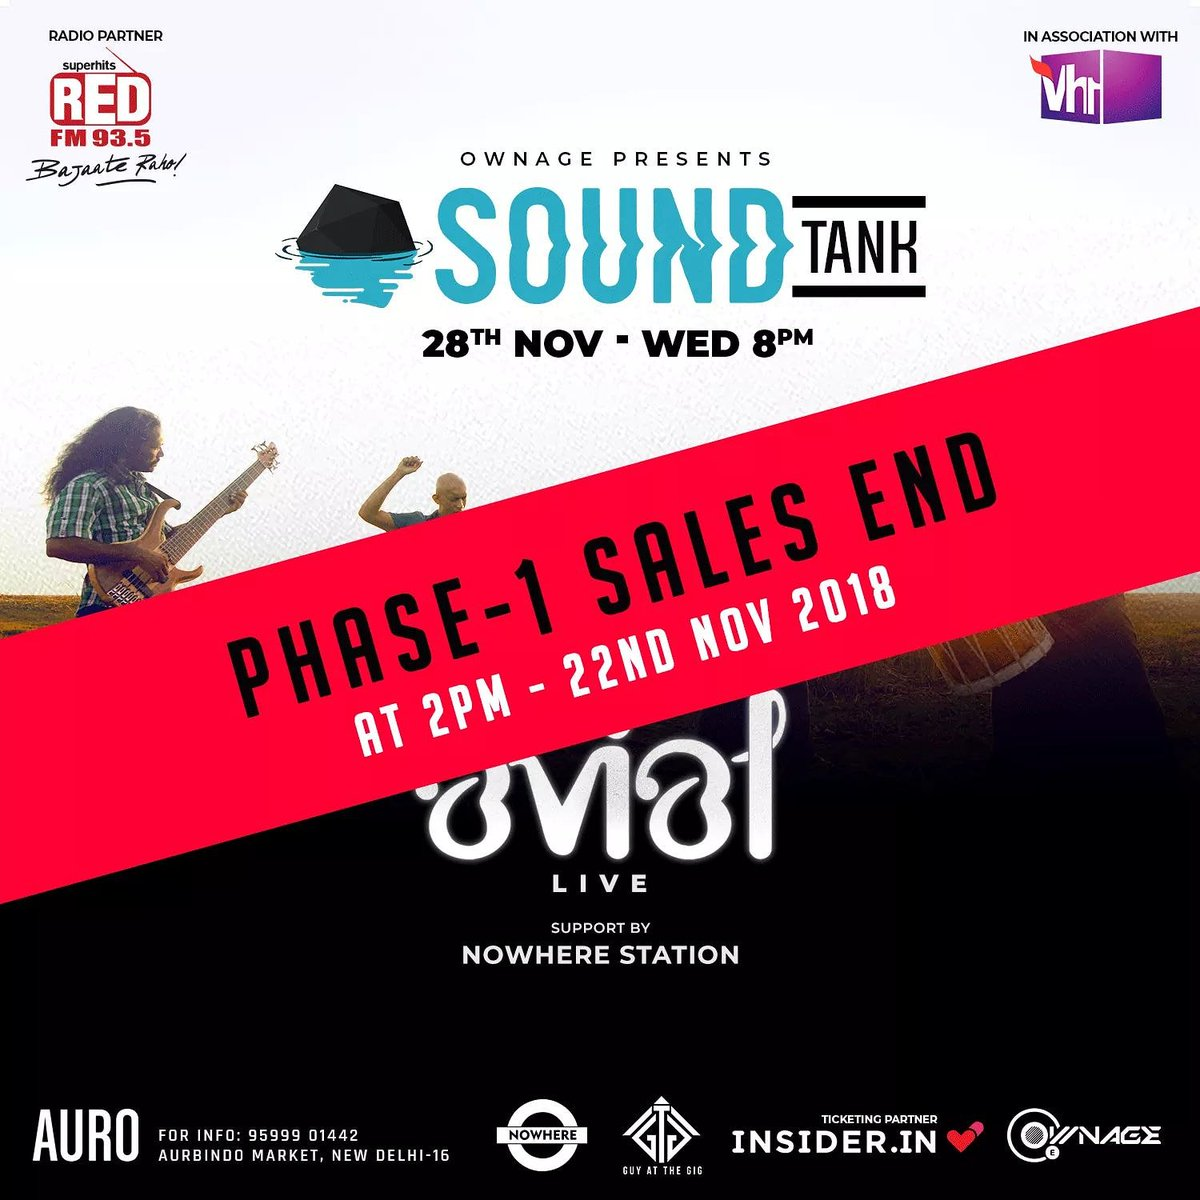 2 hours to go! Phase 1 tickets are almost sold out and shut in two hours!  @avialofficial @aurokitchenbar @vh1india @redfmindia  @insiderdotin @Ownage_Ent #TheFutureIsLive #alternativerock #alternativerockmusic #avialband #alternativerockband #delhi #delhigigs #indiemusic #musicpic.twitter.com/4q3E9sv5uY